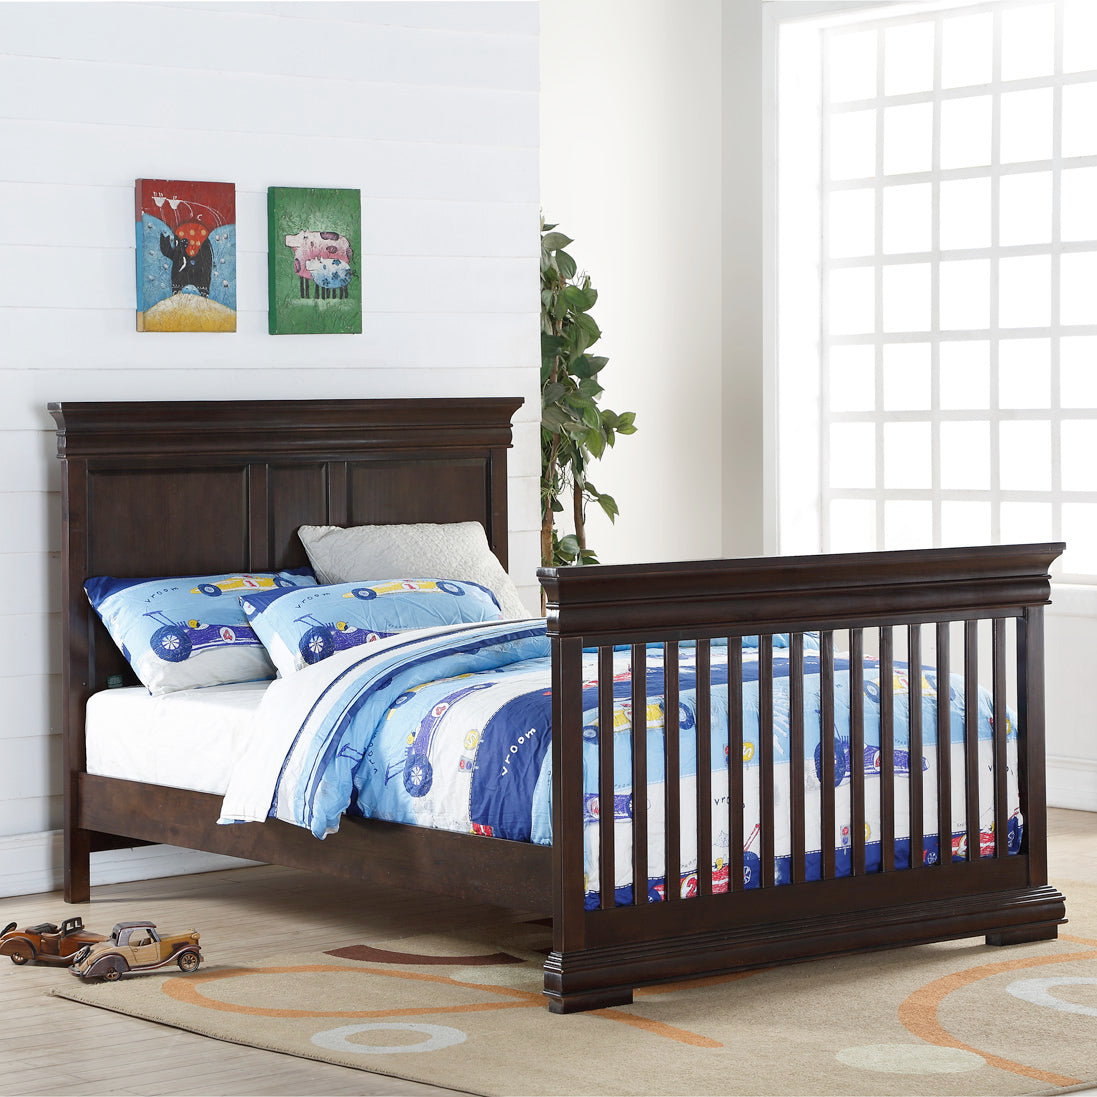 Bellini Bambino Furniture